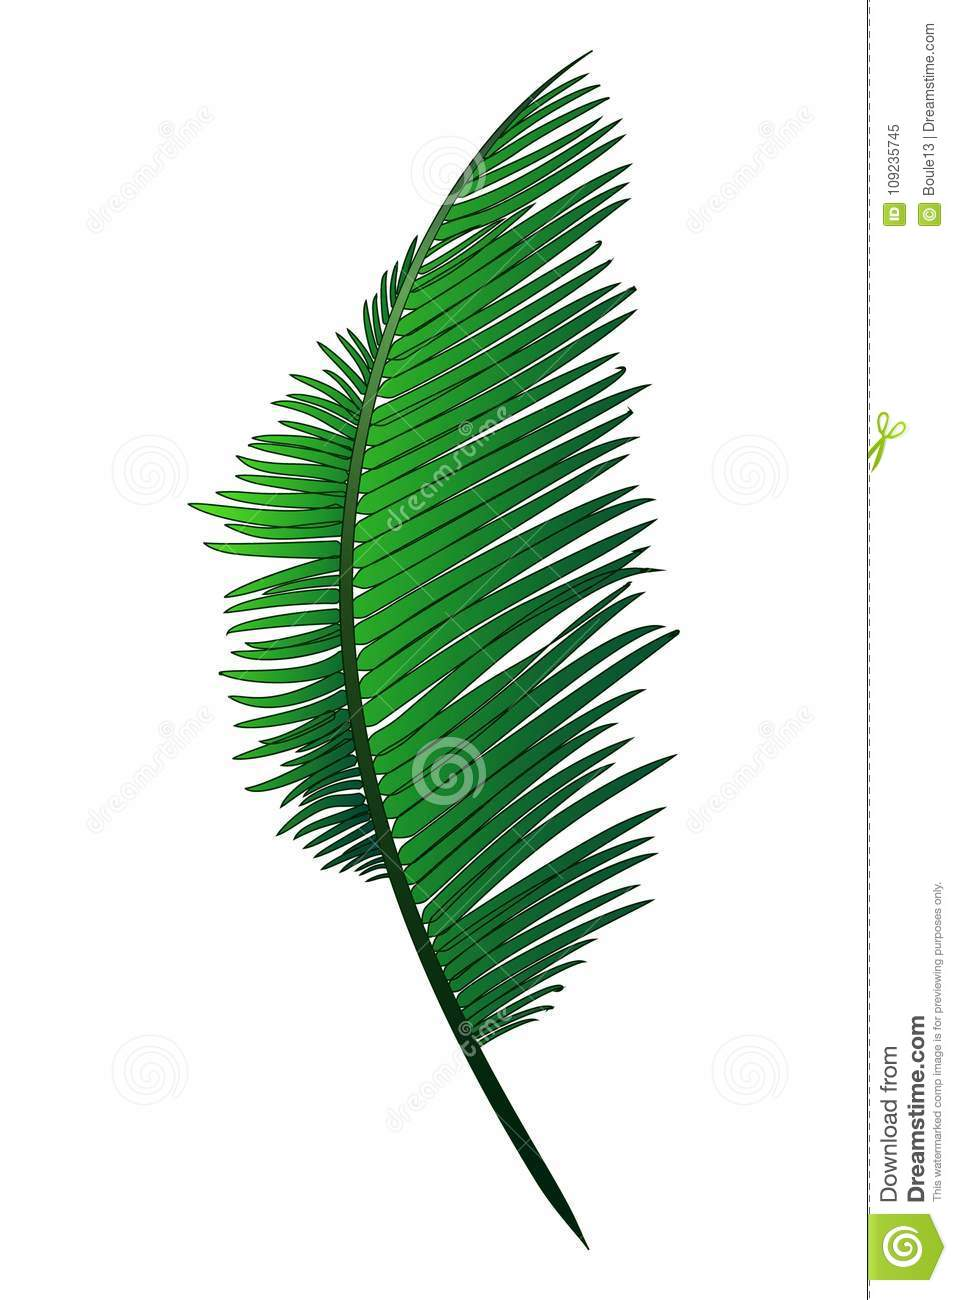 Realistic green branch of tropical coconut palm